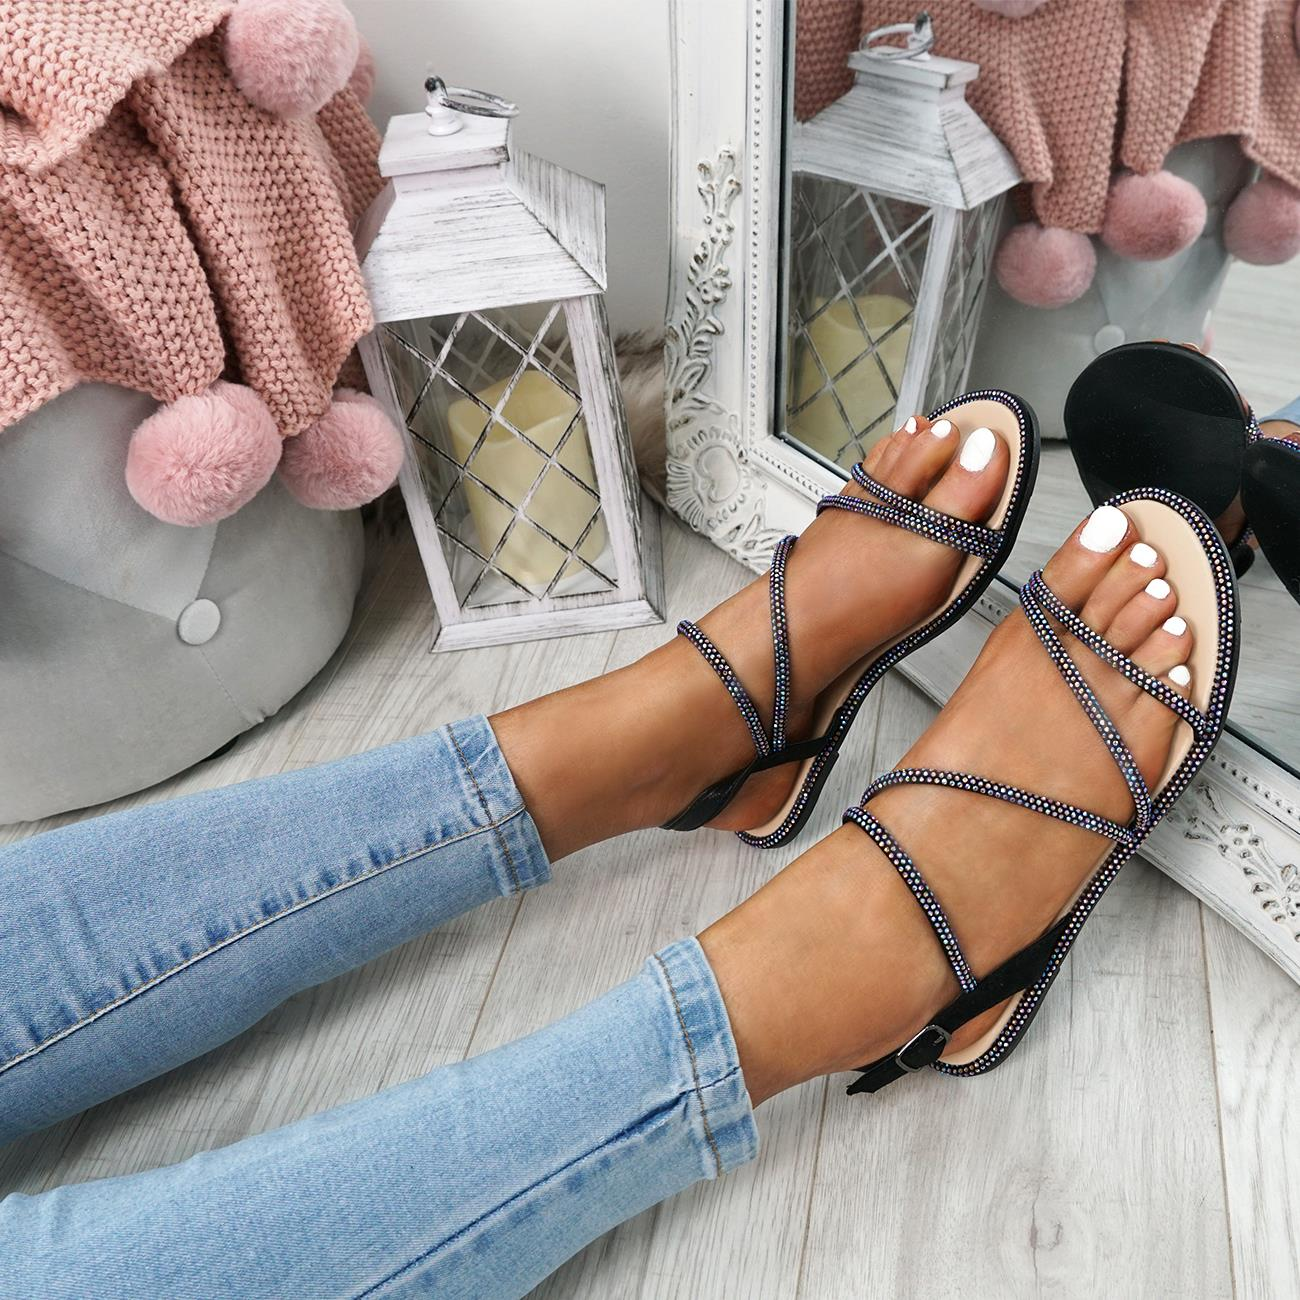 WOMENS-LADIES-STUDDED-ANKLE-STRAP-FLAT-SHOES-PARTY-CLUB-SANDALS-SHOES-SIZE-UK thumbnail 7